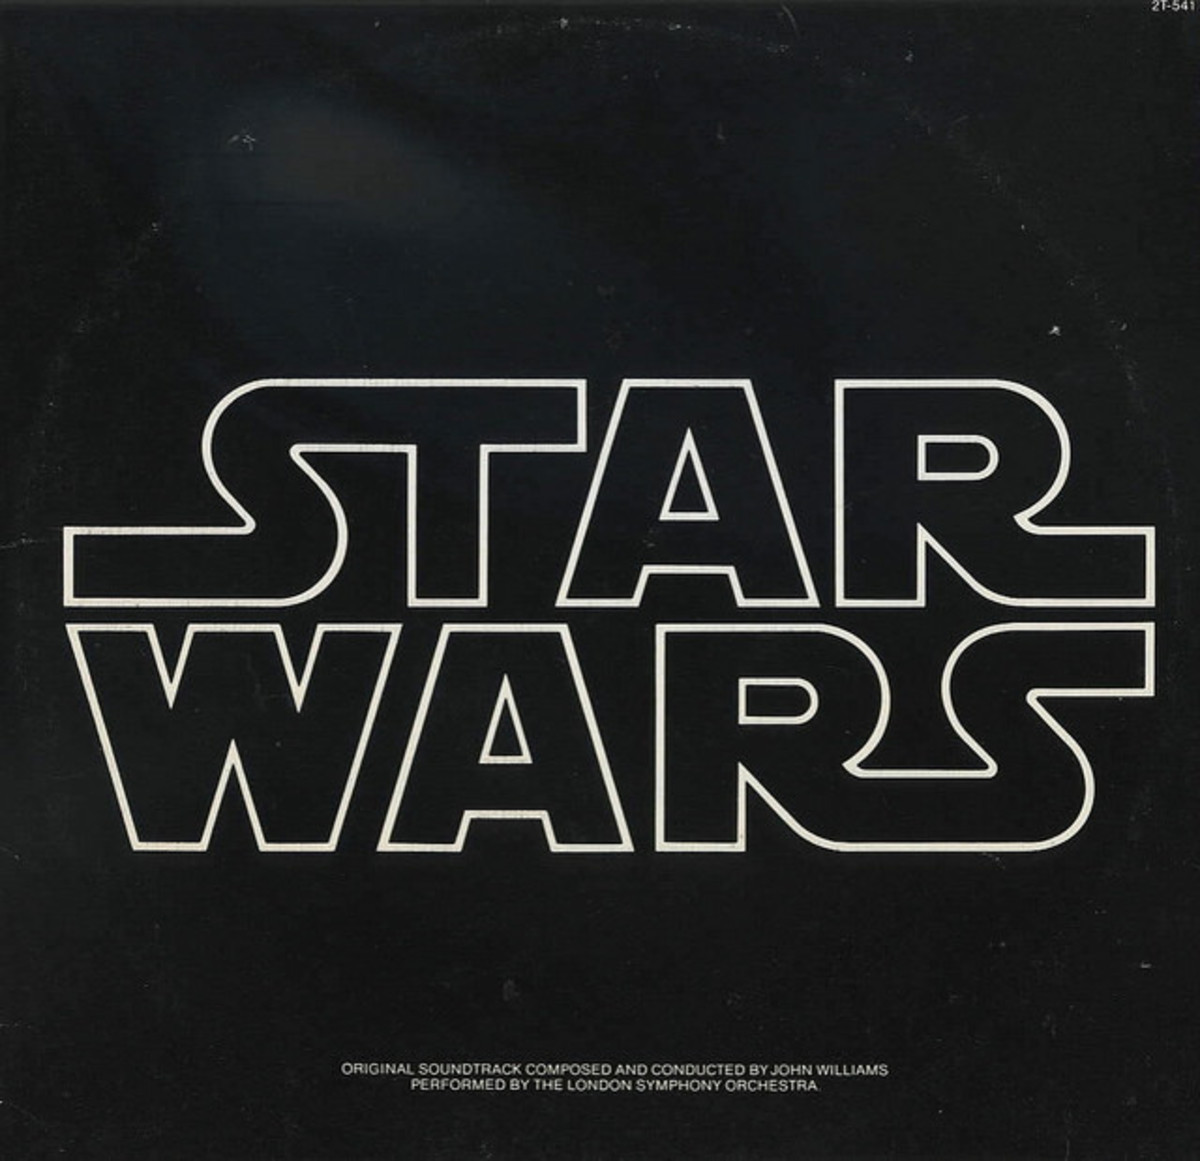 """Star Wars"" 20th Century Records 2T-541 2 12"" LP Vinyl Record Set, US Pressing (1977) John Williams"